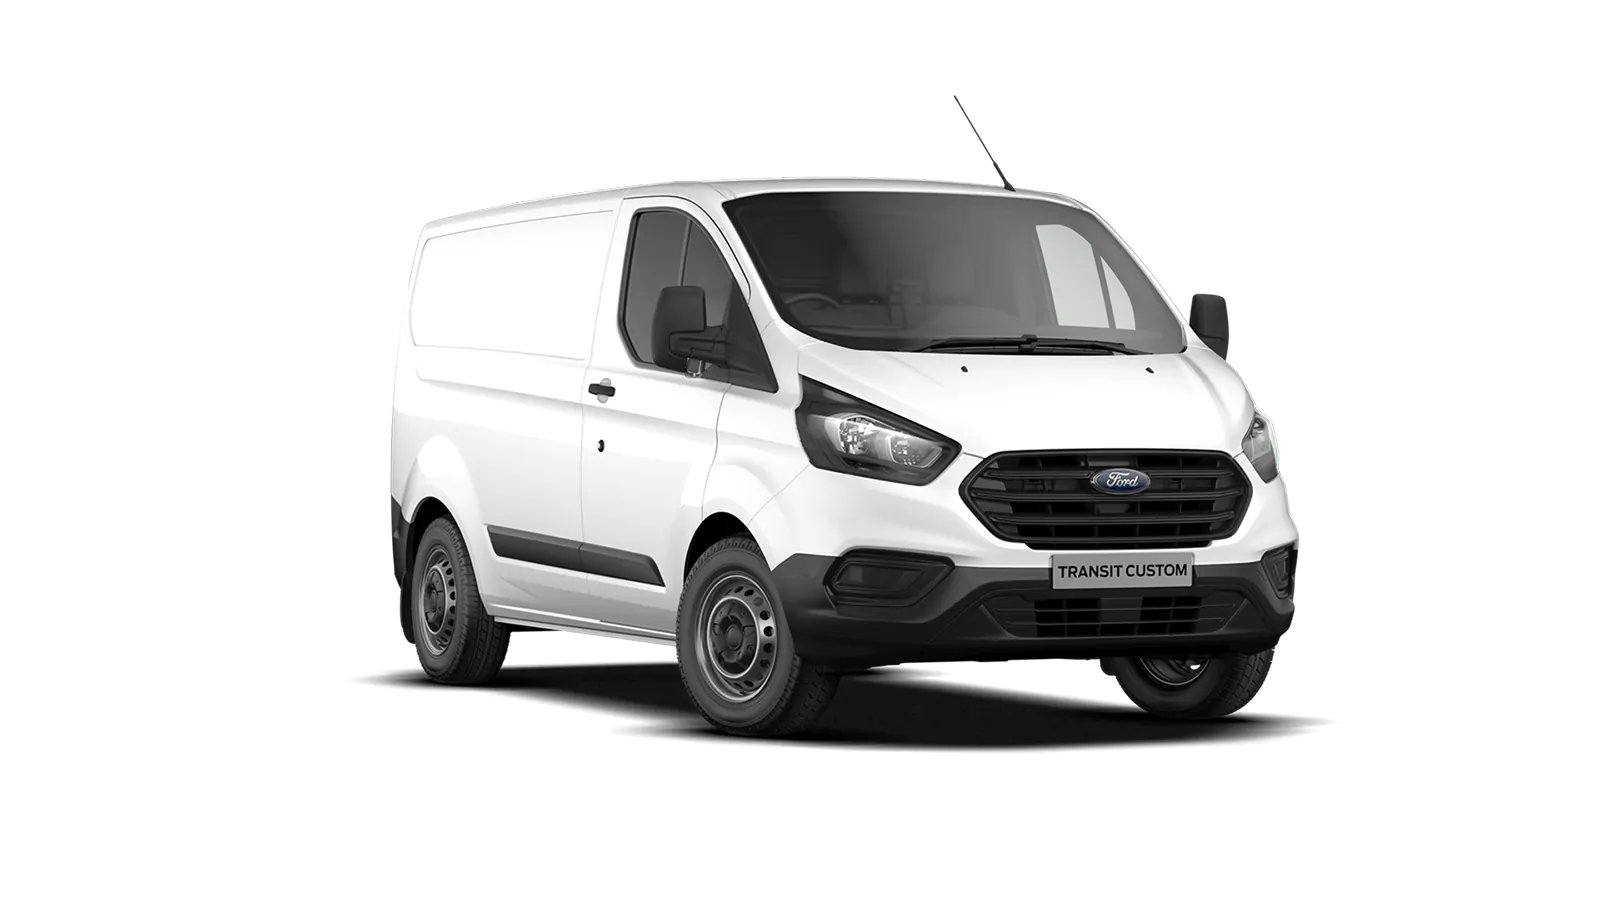 191 Ford Transit Custom Trend 2.0TD 130PS SWB White White, Boland Motors